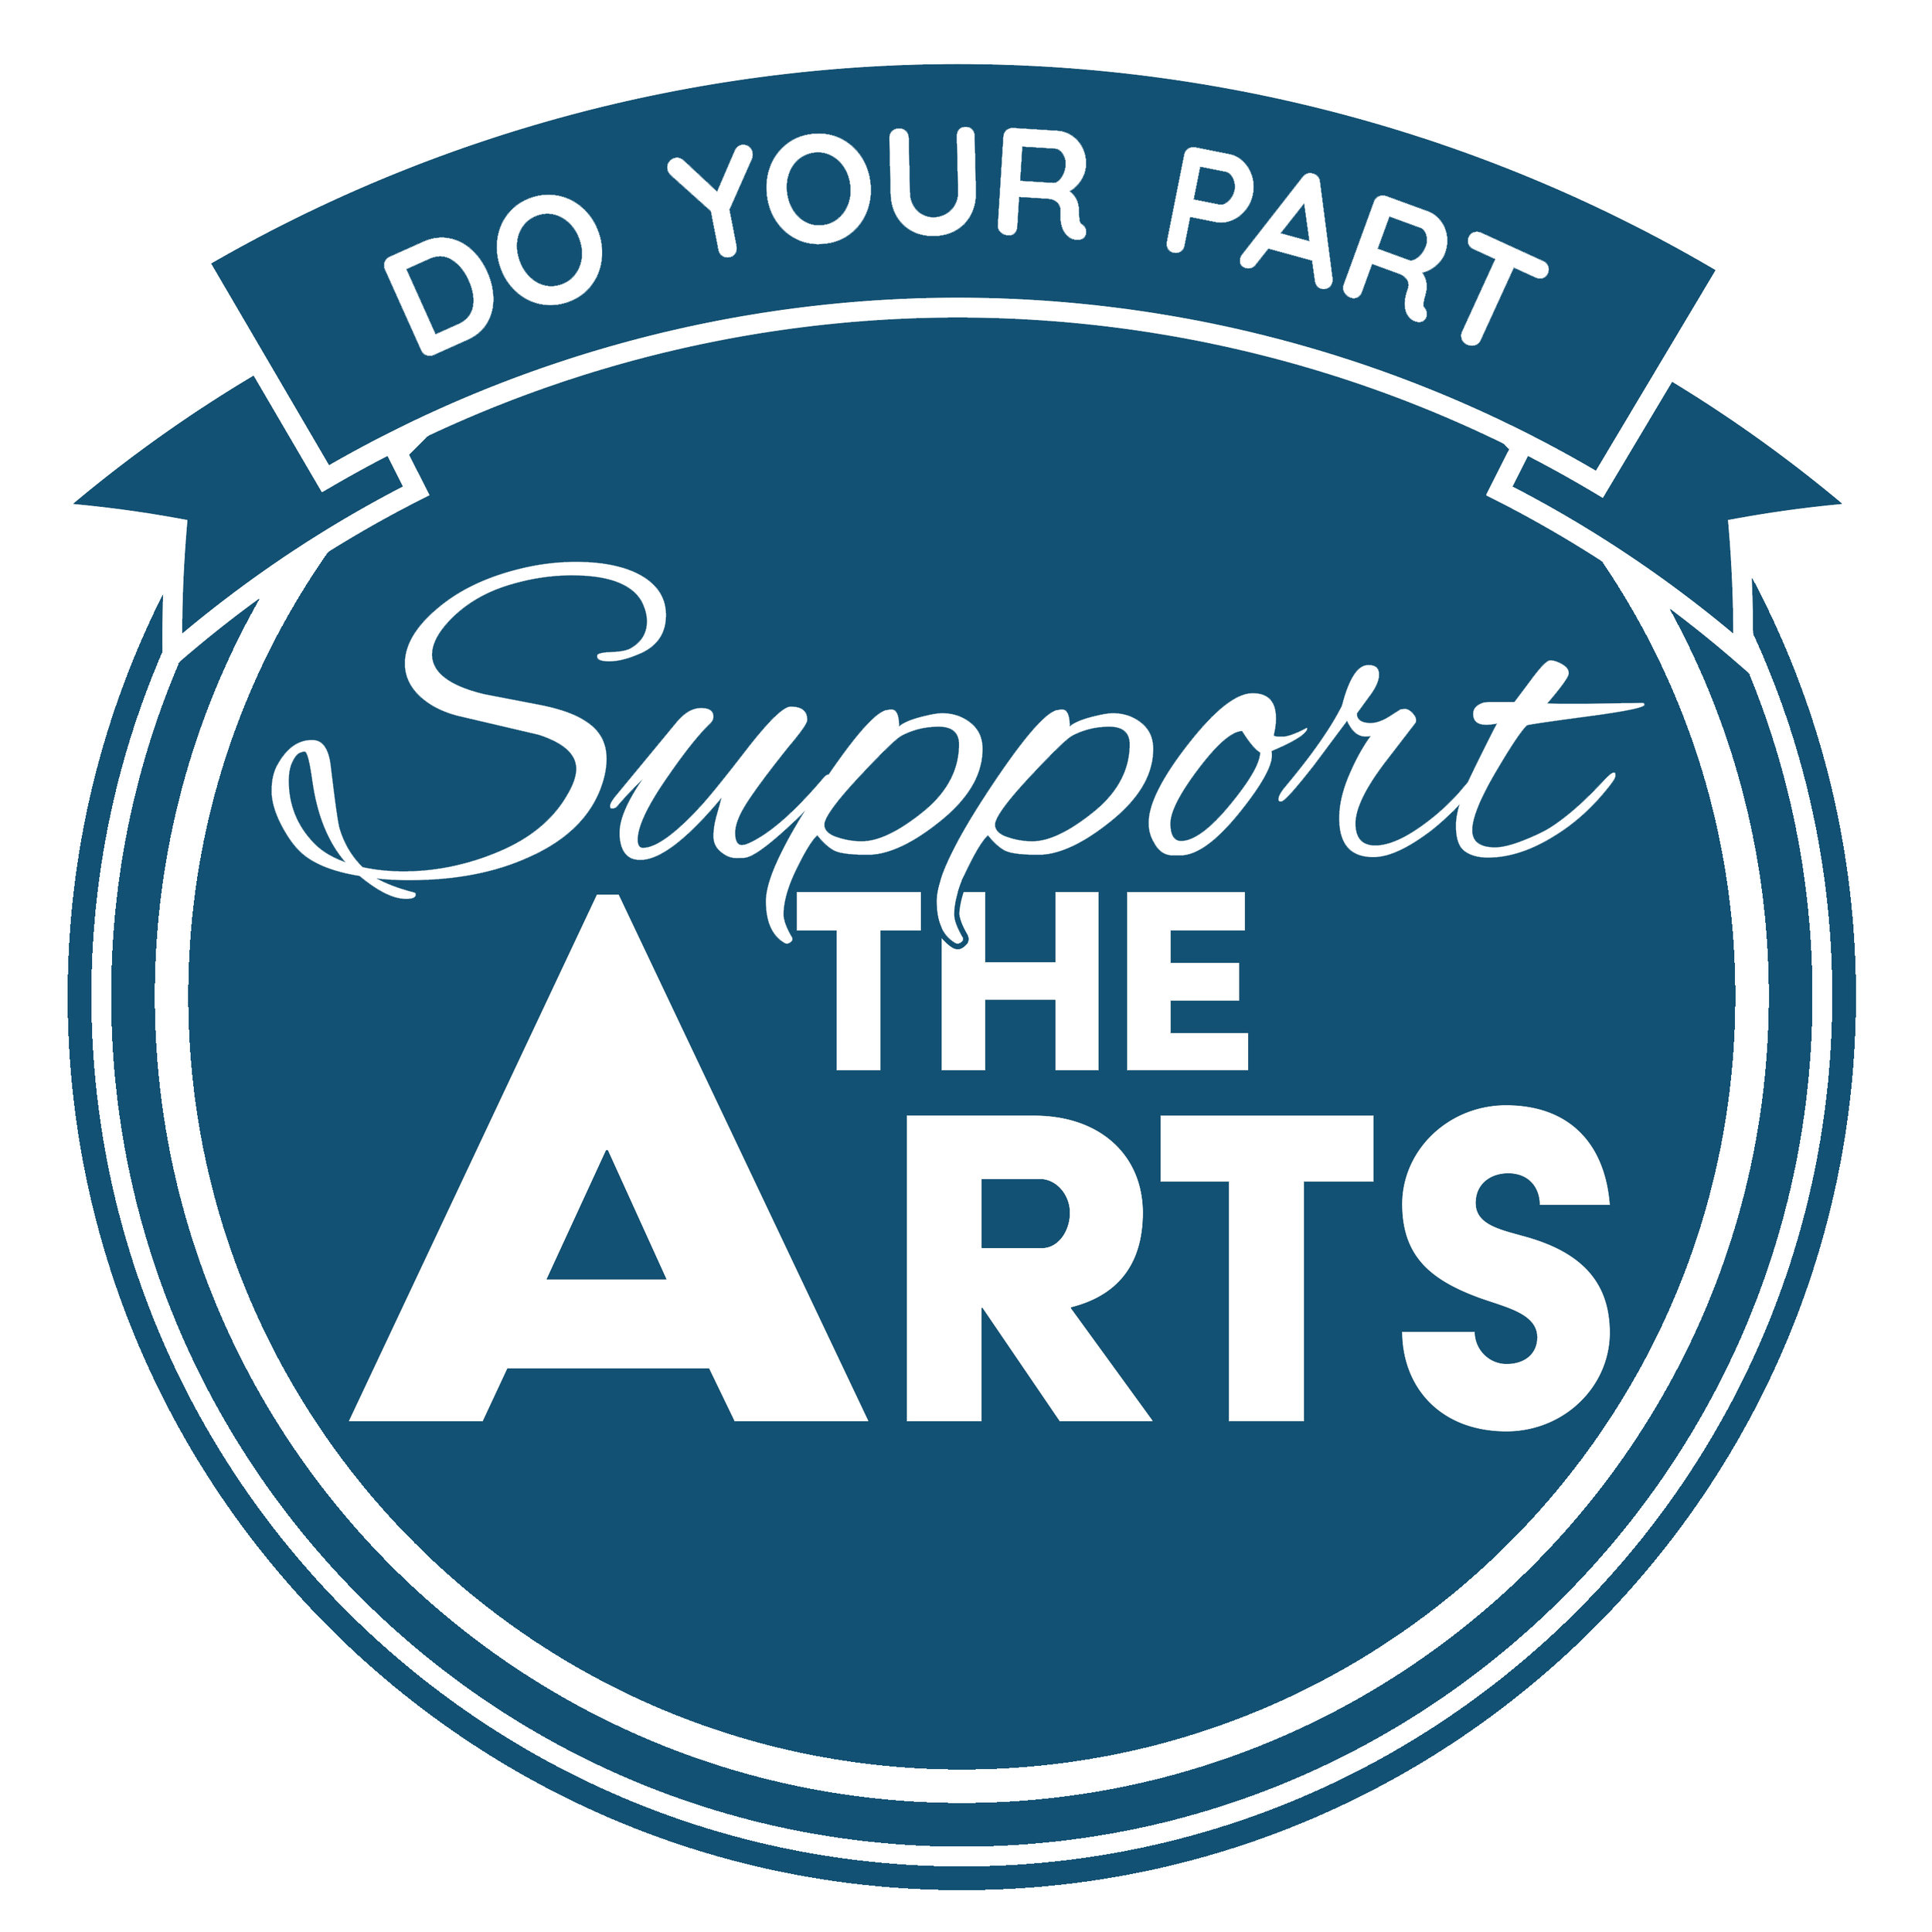 Support The Arts Badge.jpg